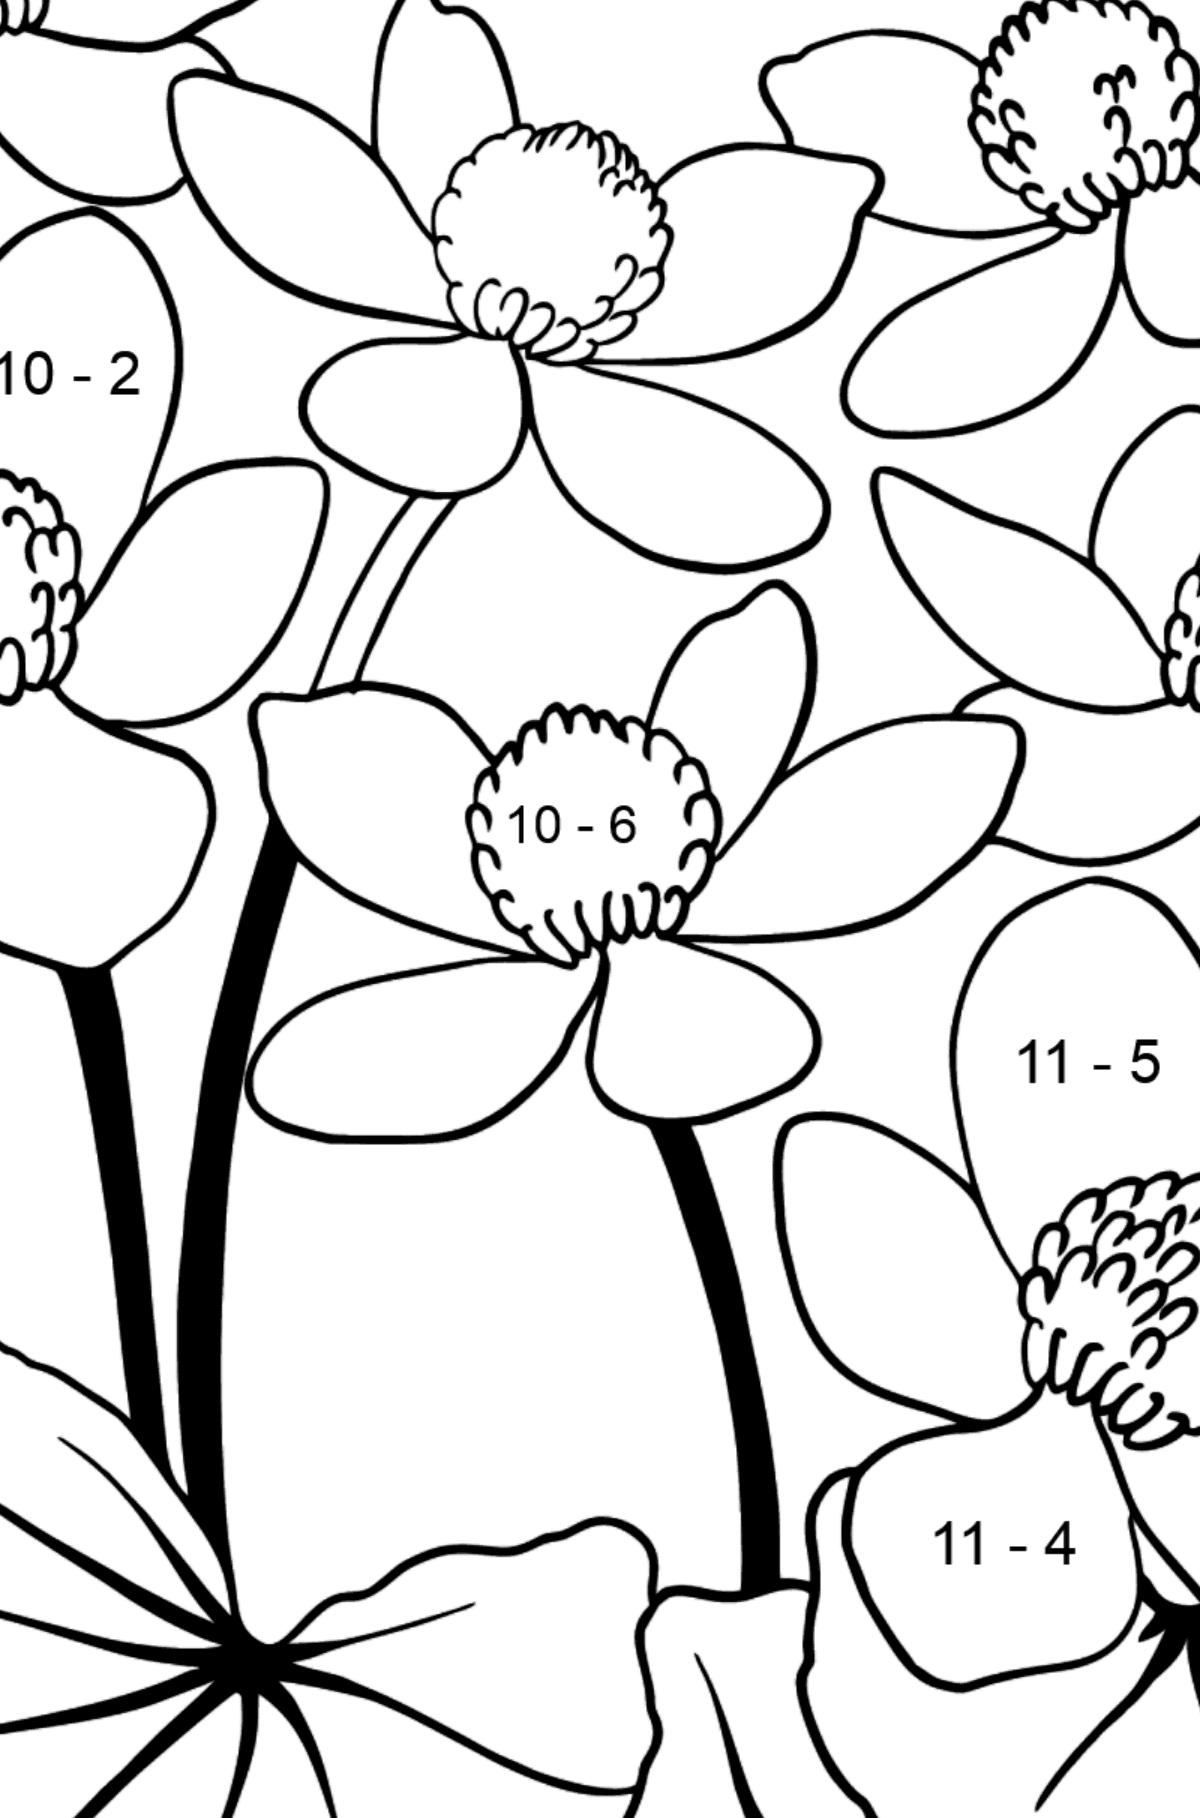 Flower Coloring Page - A Yellow and Red Marsh Marigold - Math Coloring - Subtraction for Kids